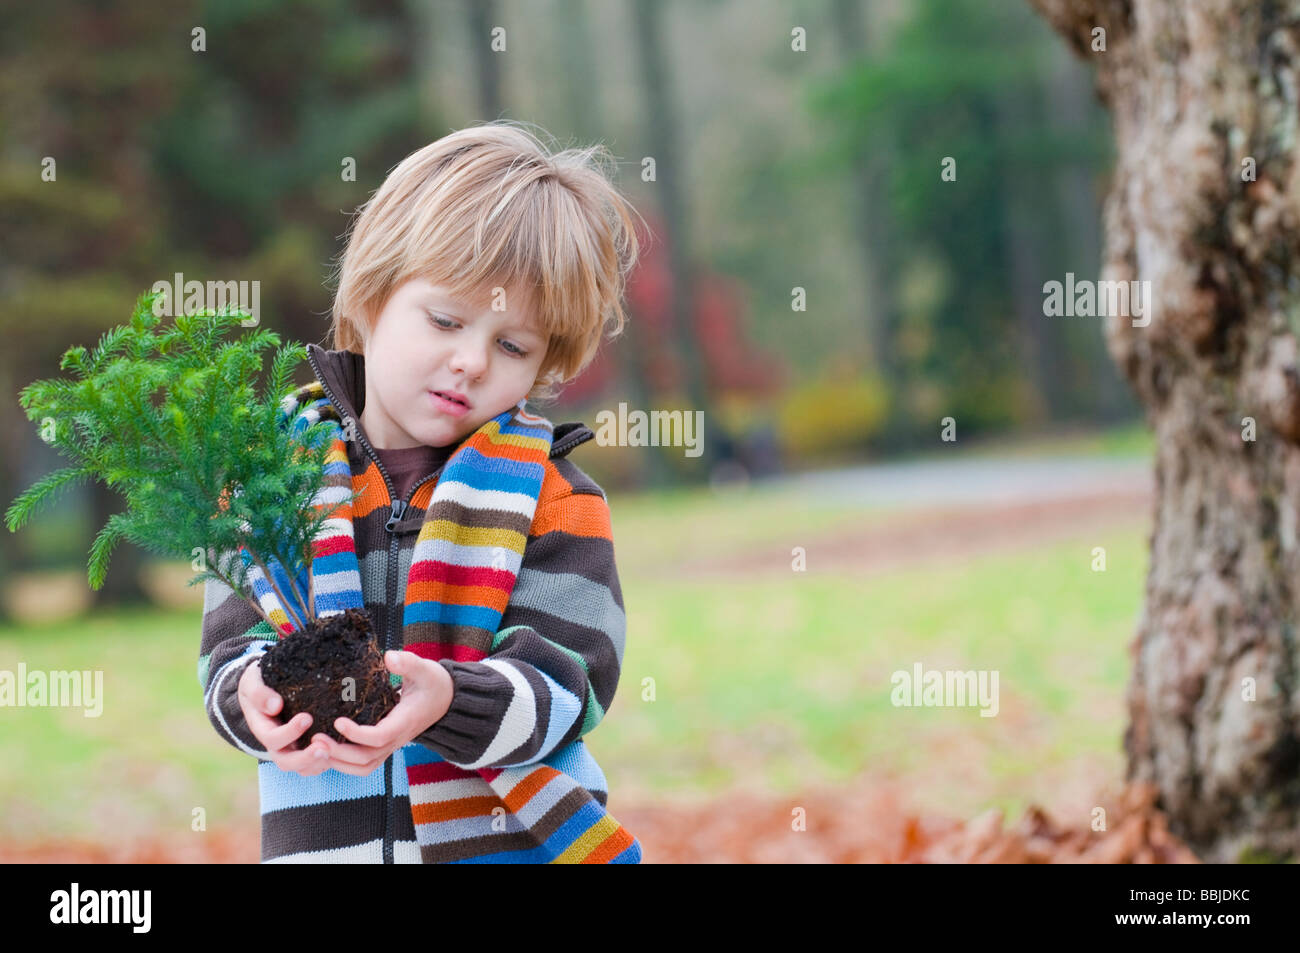 Young boy holding small tree ready to plant, Vancouver, British Columbia Stock Photo